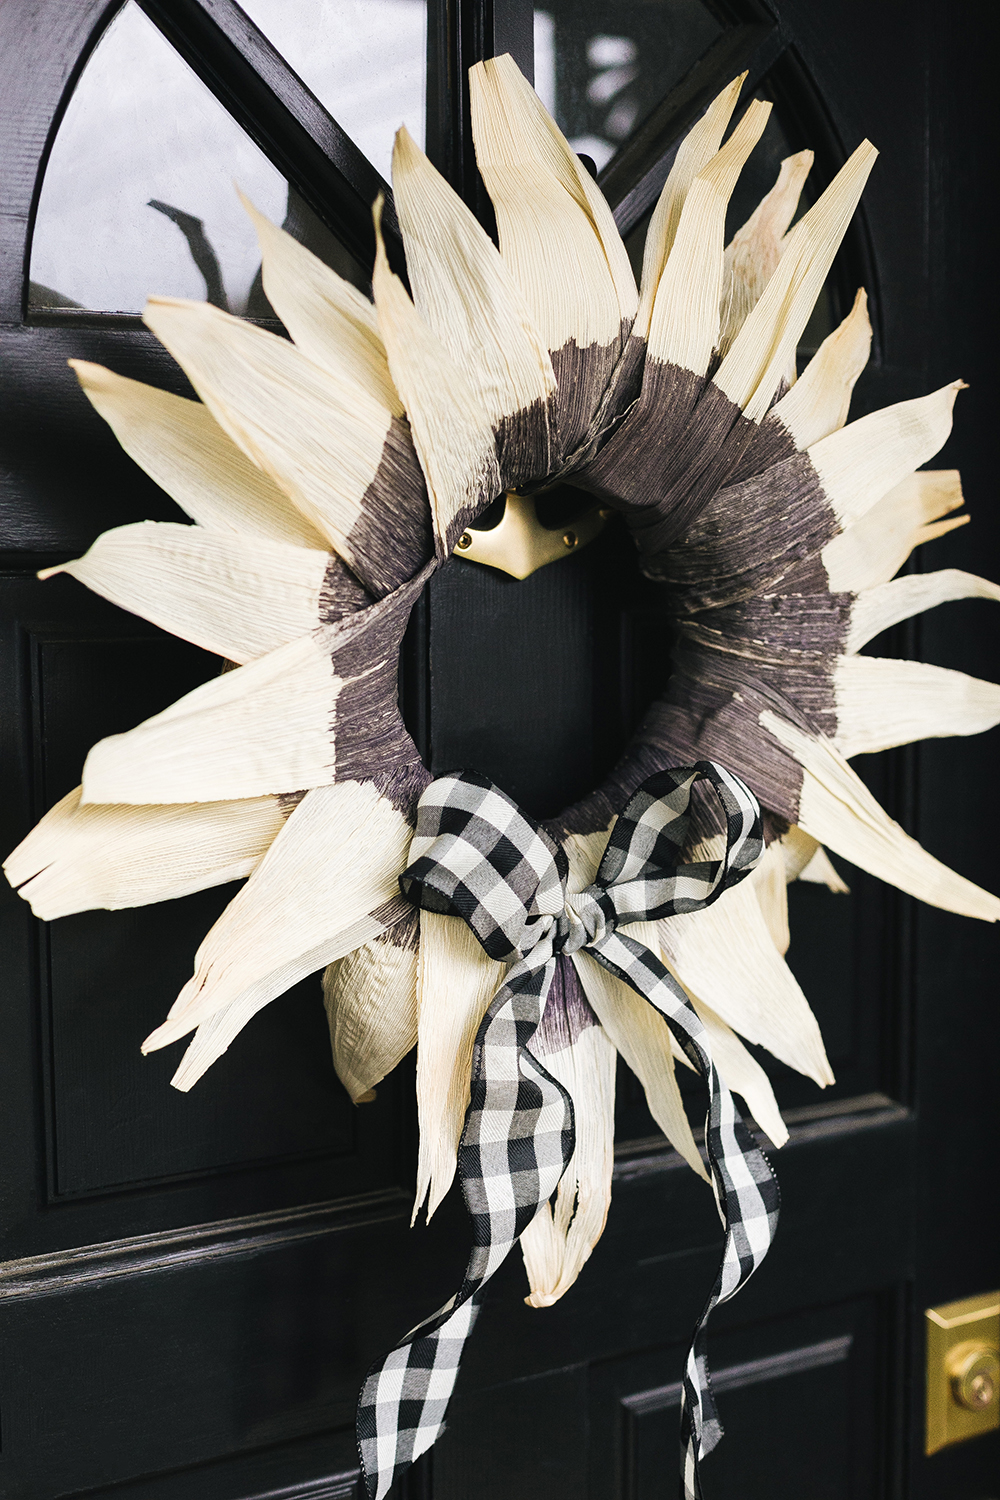 How to Make a Dip Dyed Corn Husk Wreath, DIY Tutorial. Use a classic dyeing technique to dress up this fall-inspired corn husk wreath. Learn how to dip dye and make a wreath with corn husks for fall, Halloween, and Thanksgiving! Get the full tutorial at Jojotastic.com #fall #wreath #diy #halloween #thanksgiving #cornhuskwreath #wreathDIY #dipdye #riydye #blackdye #halloweenwreath #fallwreath